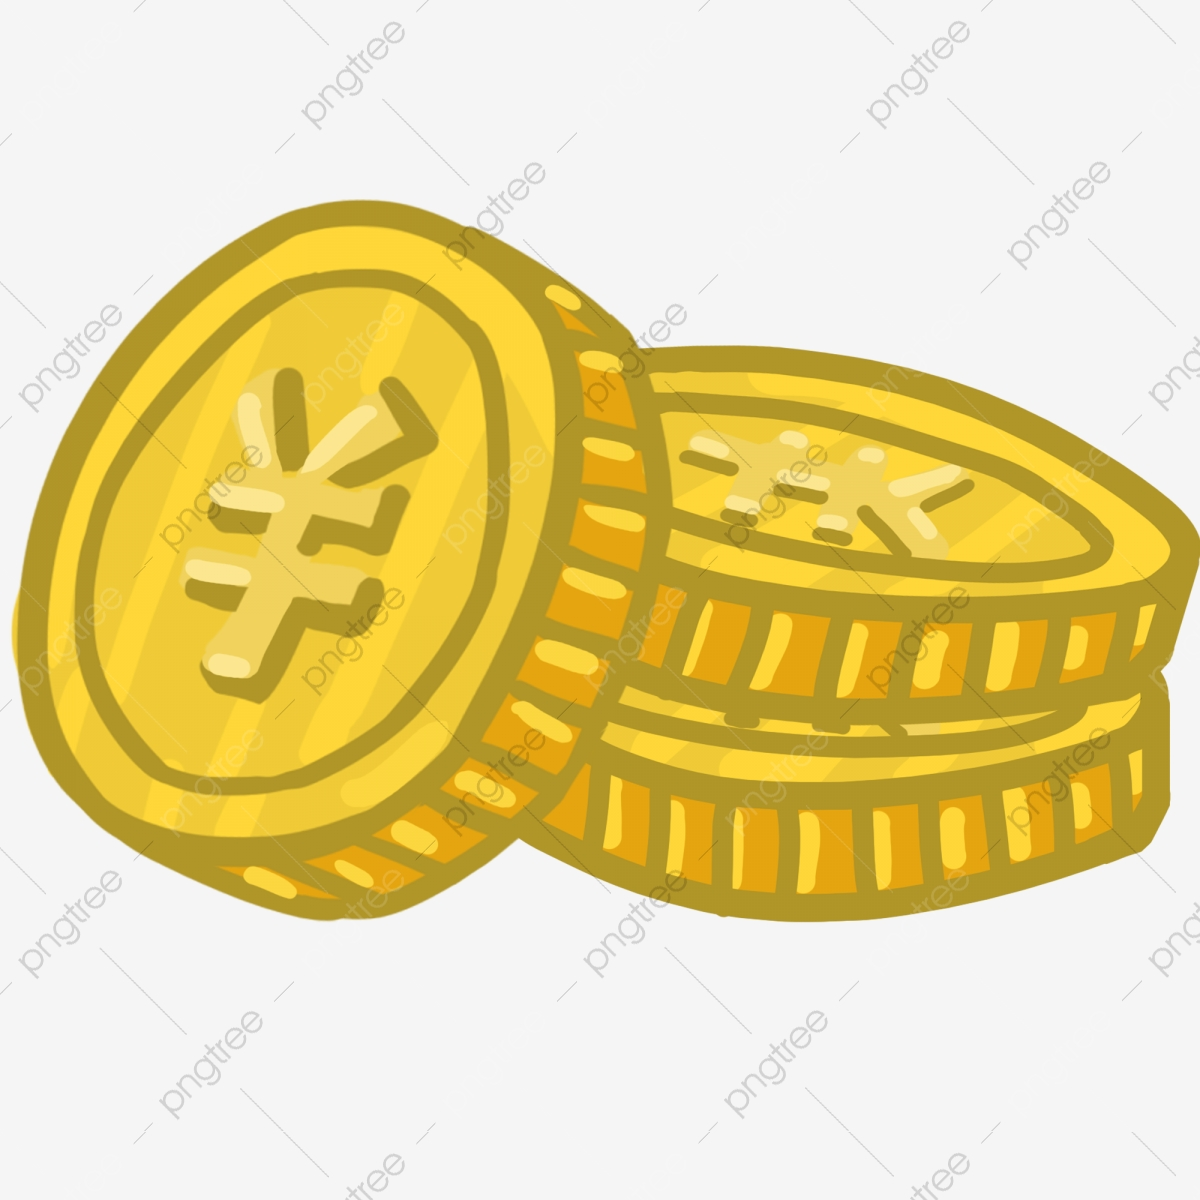 Coin clipart illustration. Euro financial png